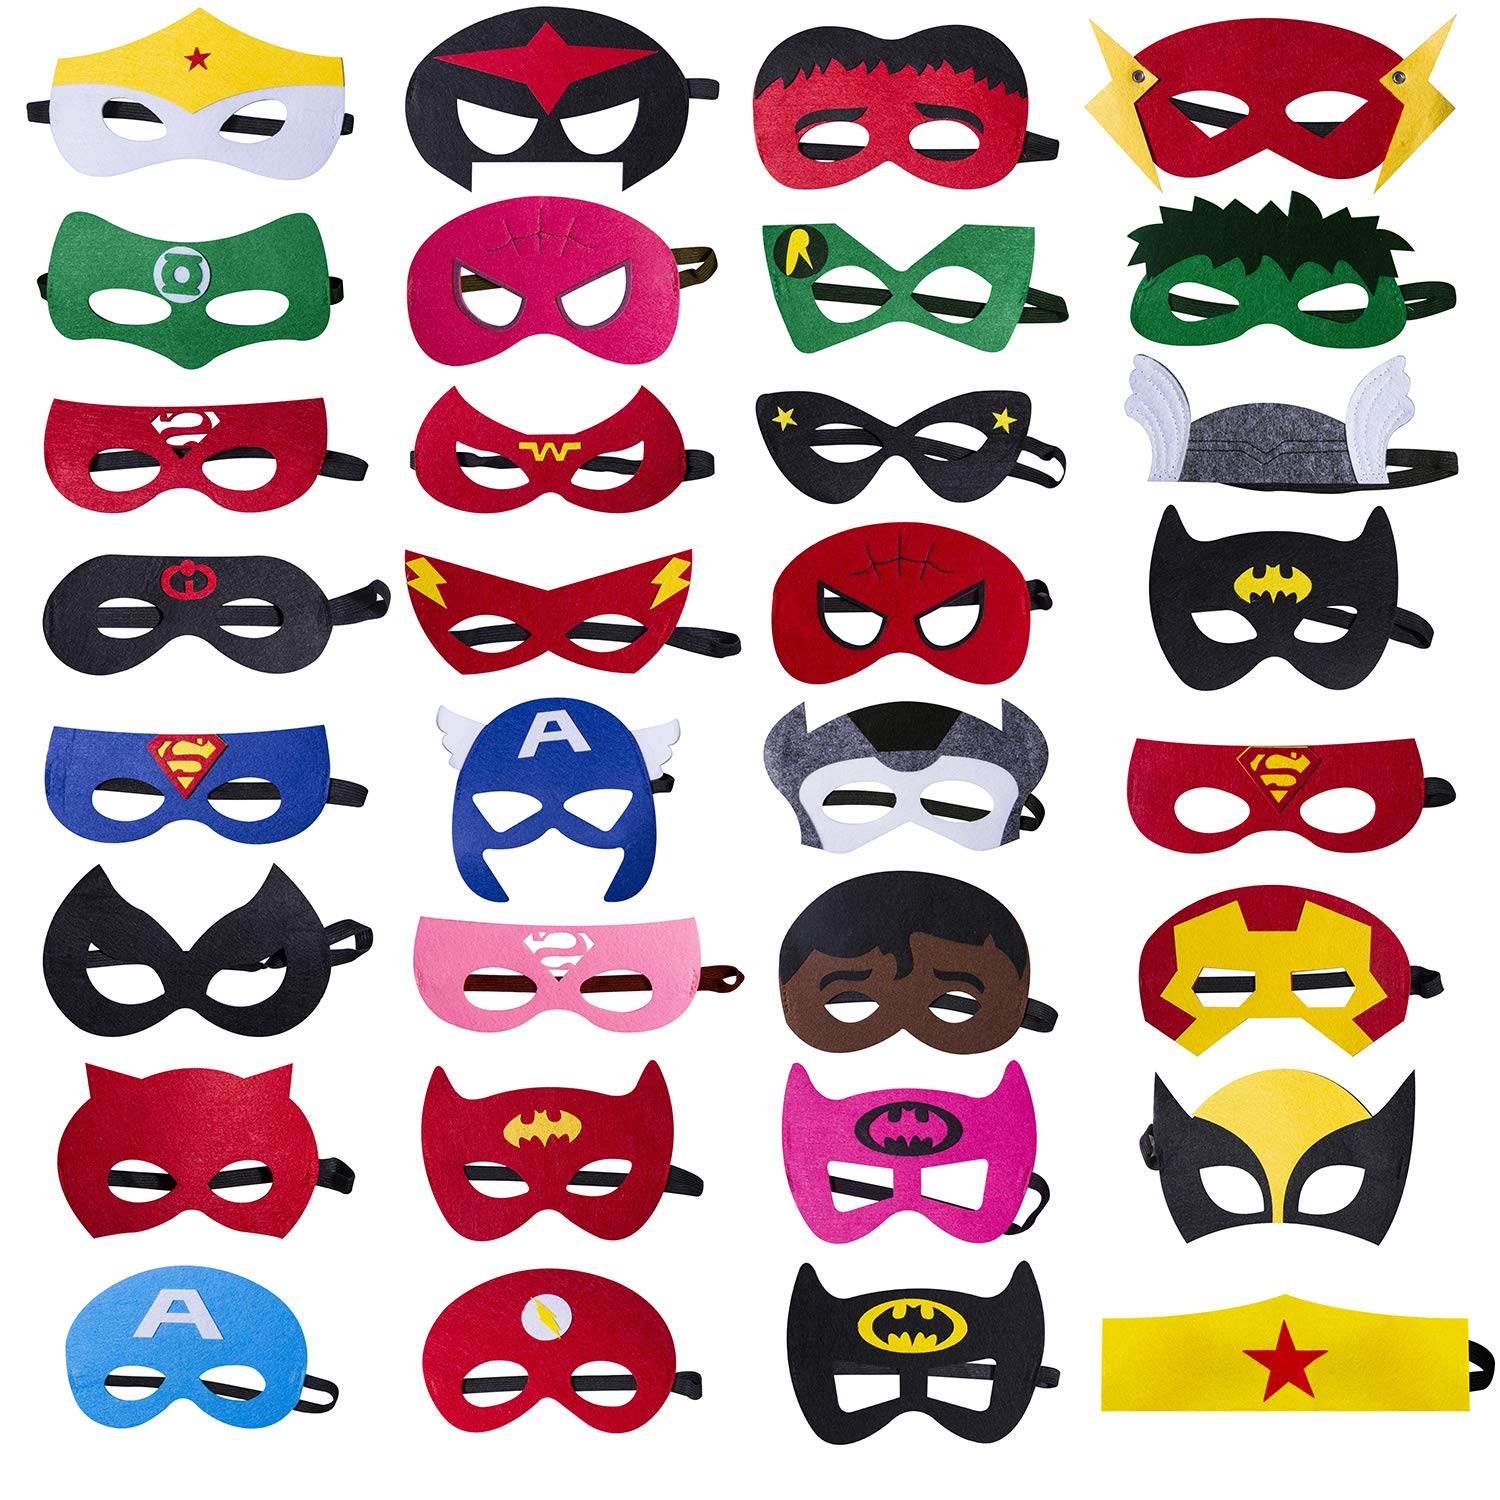 Darller 32 Pcs Halloween Felt Masks Superhero Party Supplies Superhero Mask for Children Aged 3+ ACS-156-1